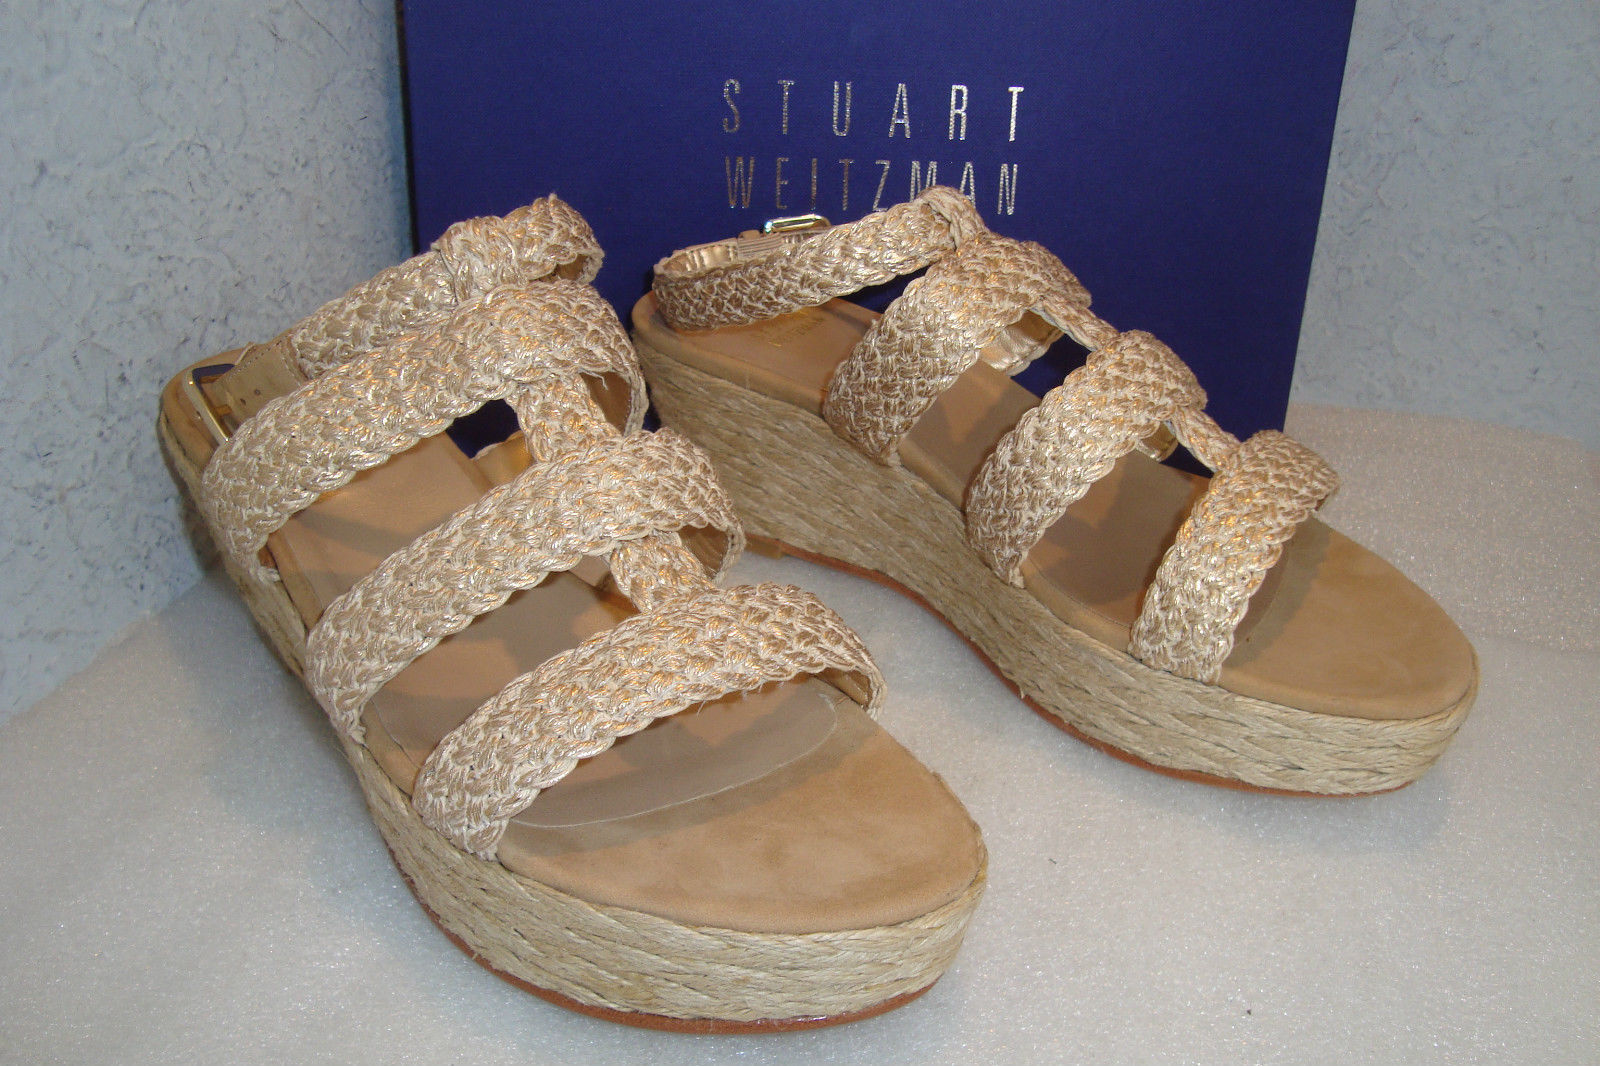 NWT and Box Stuart Weitzman Haiti oro Crochet and Leather Wedge Sandals Dimensione 7